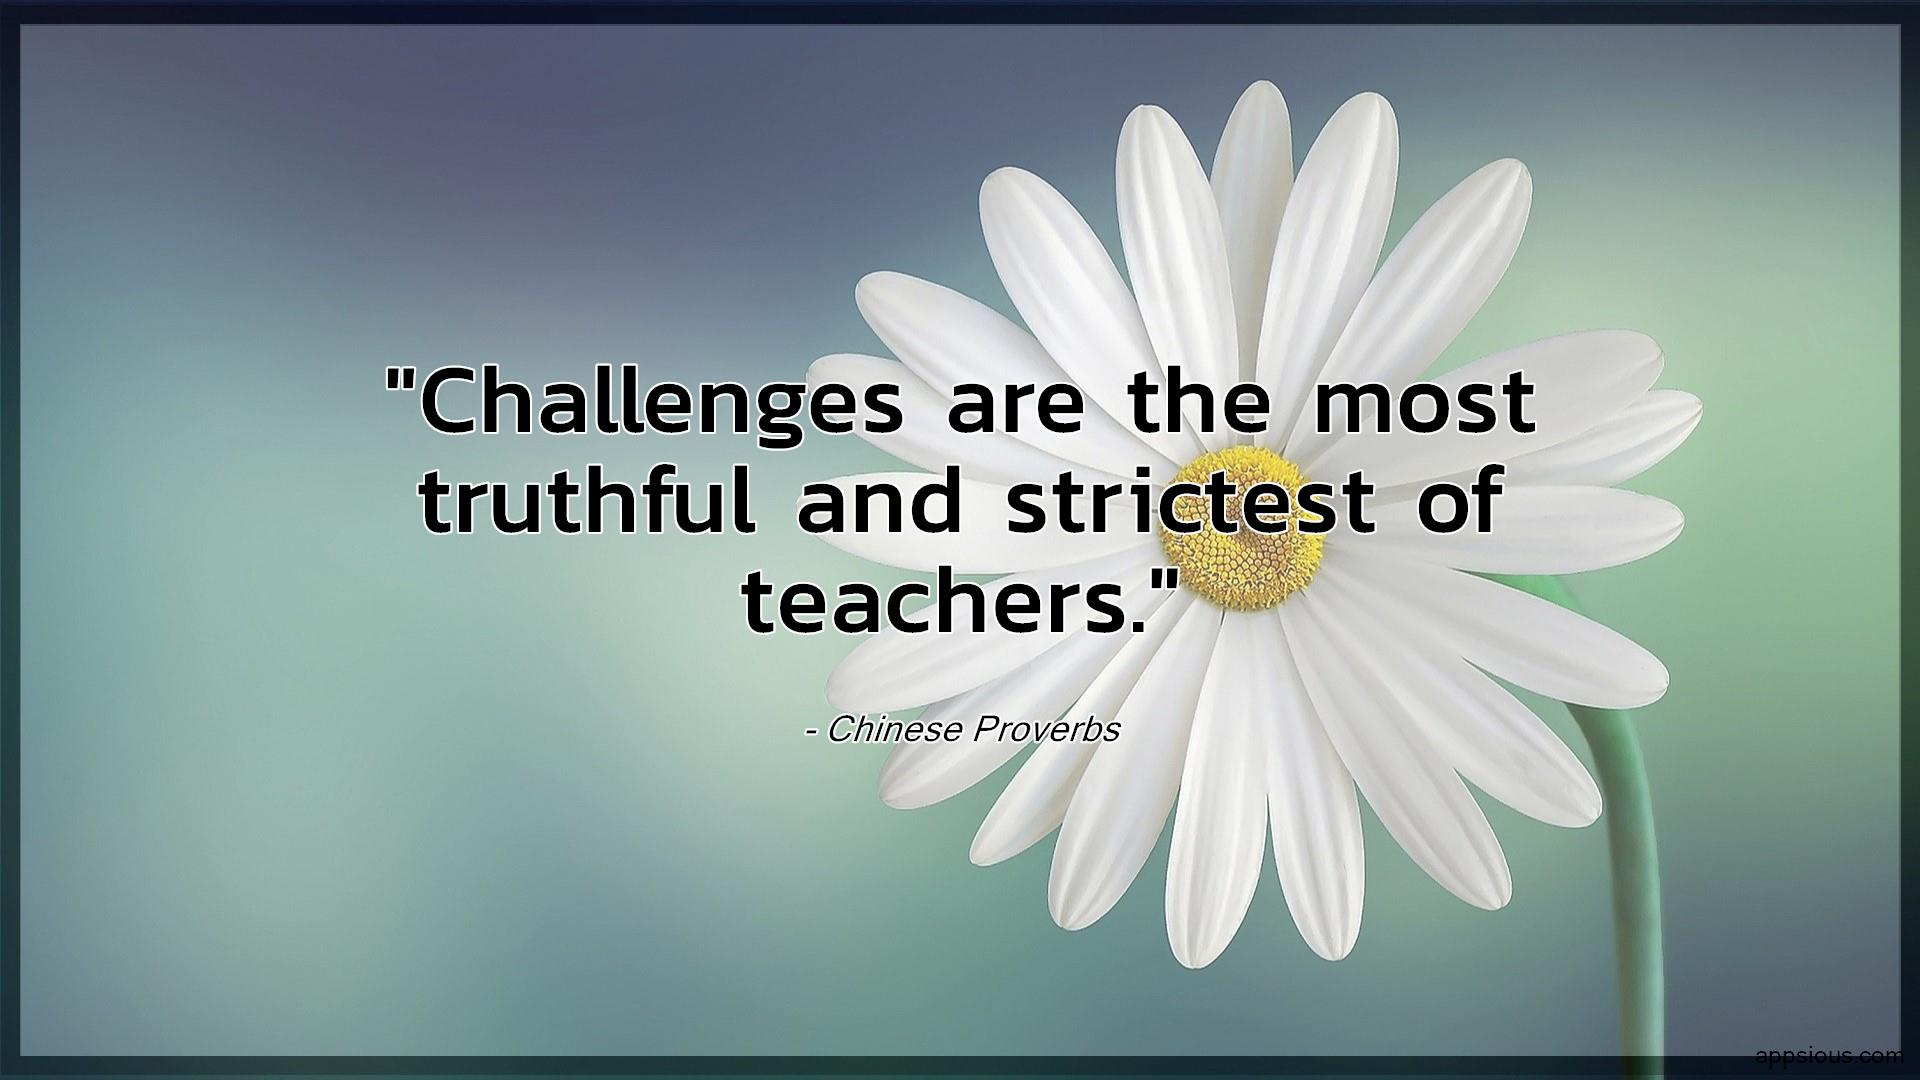 Challenges are the most truthful and strictest of teachers.